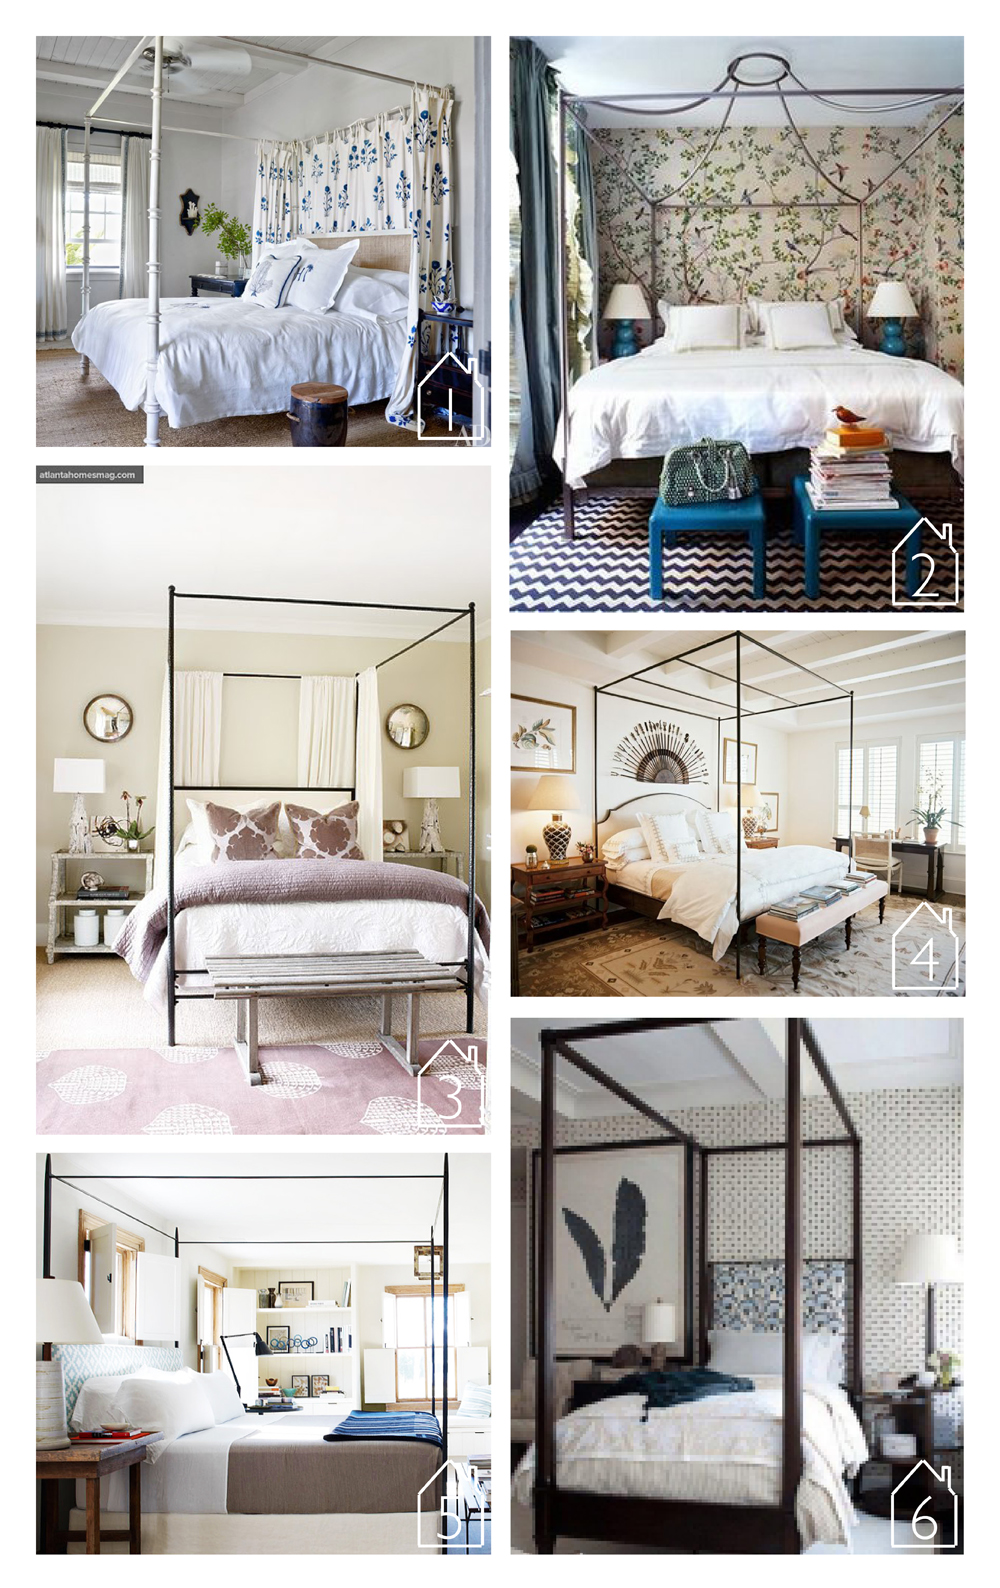 1. design by Alessandra Branca's featured in Architectural Digest  2. design by Miles Redd featured in Domino  3. via Prairie Perch  4. design by Bunny Williams via Lonny  5. design by Robert Stillin via Domaine Home  6. via OBX trading company